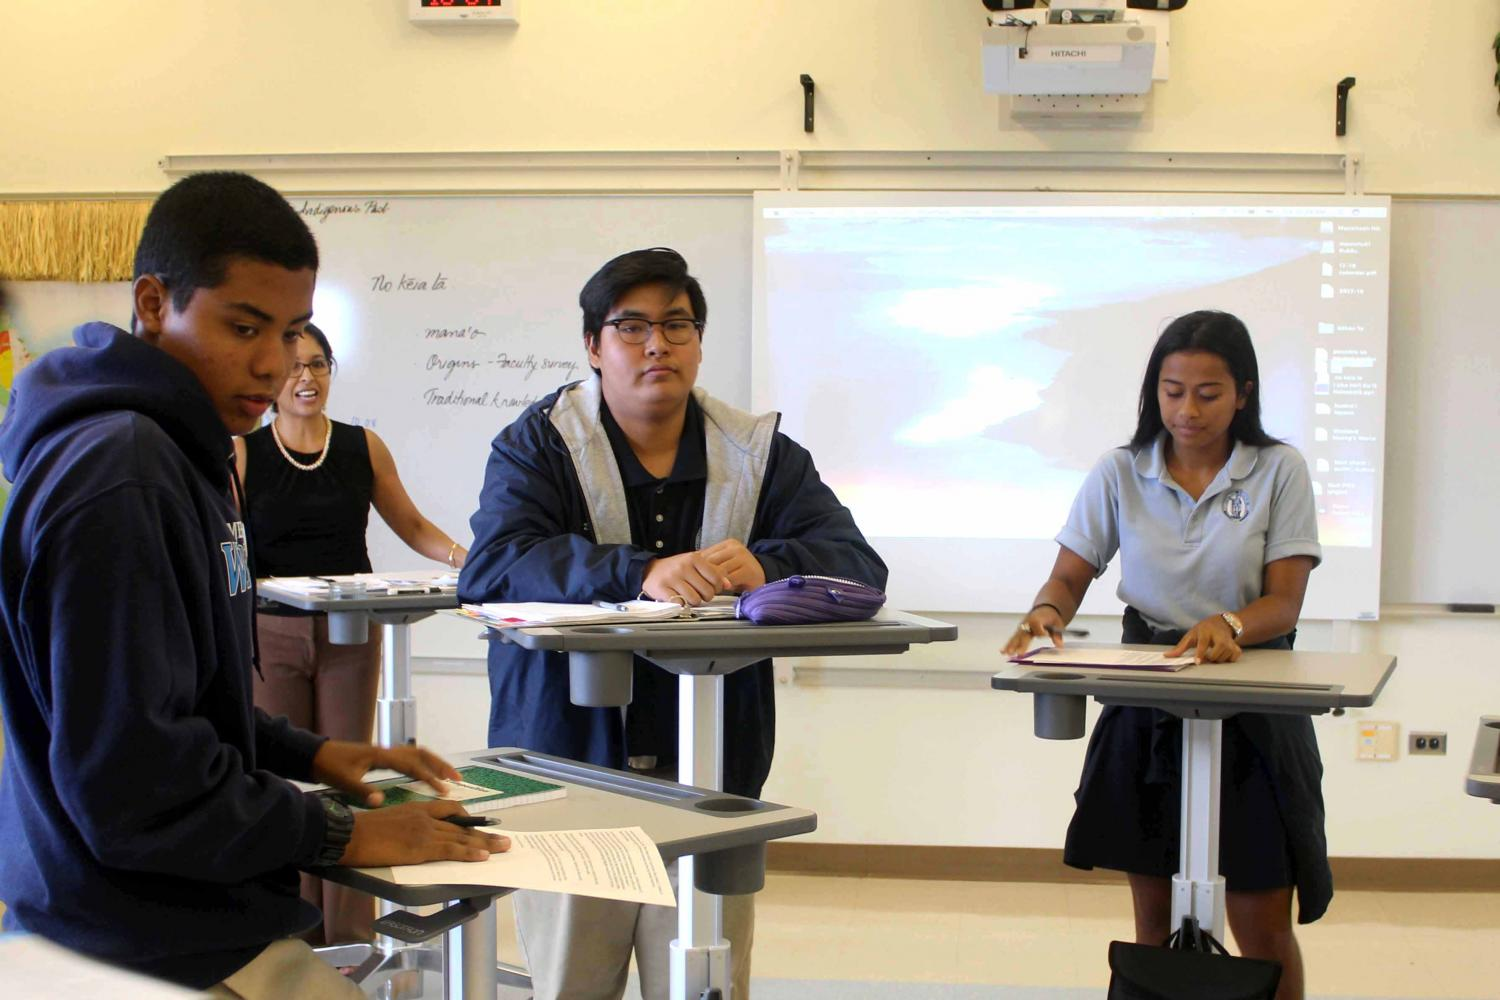 Seniors Kaleo Deguilmo, Dylan Falces, and Delissa Rano listen while Kumu Kapulani gives instructions. Kumu Kapulani converted her traditional desks with chairs to standing desks to improve brain and body engagement in her classes.